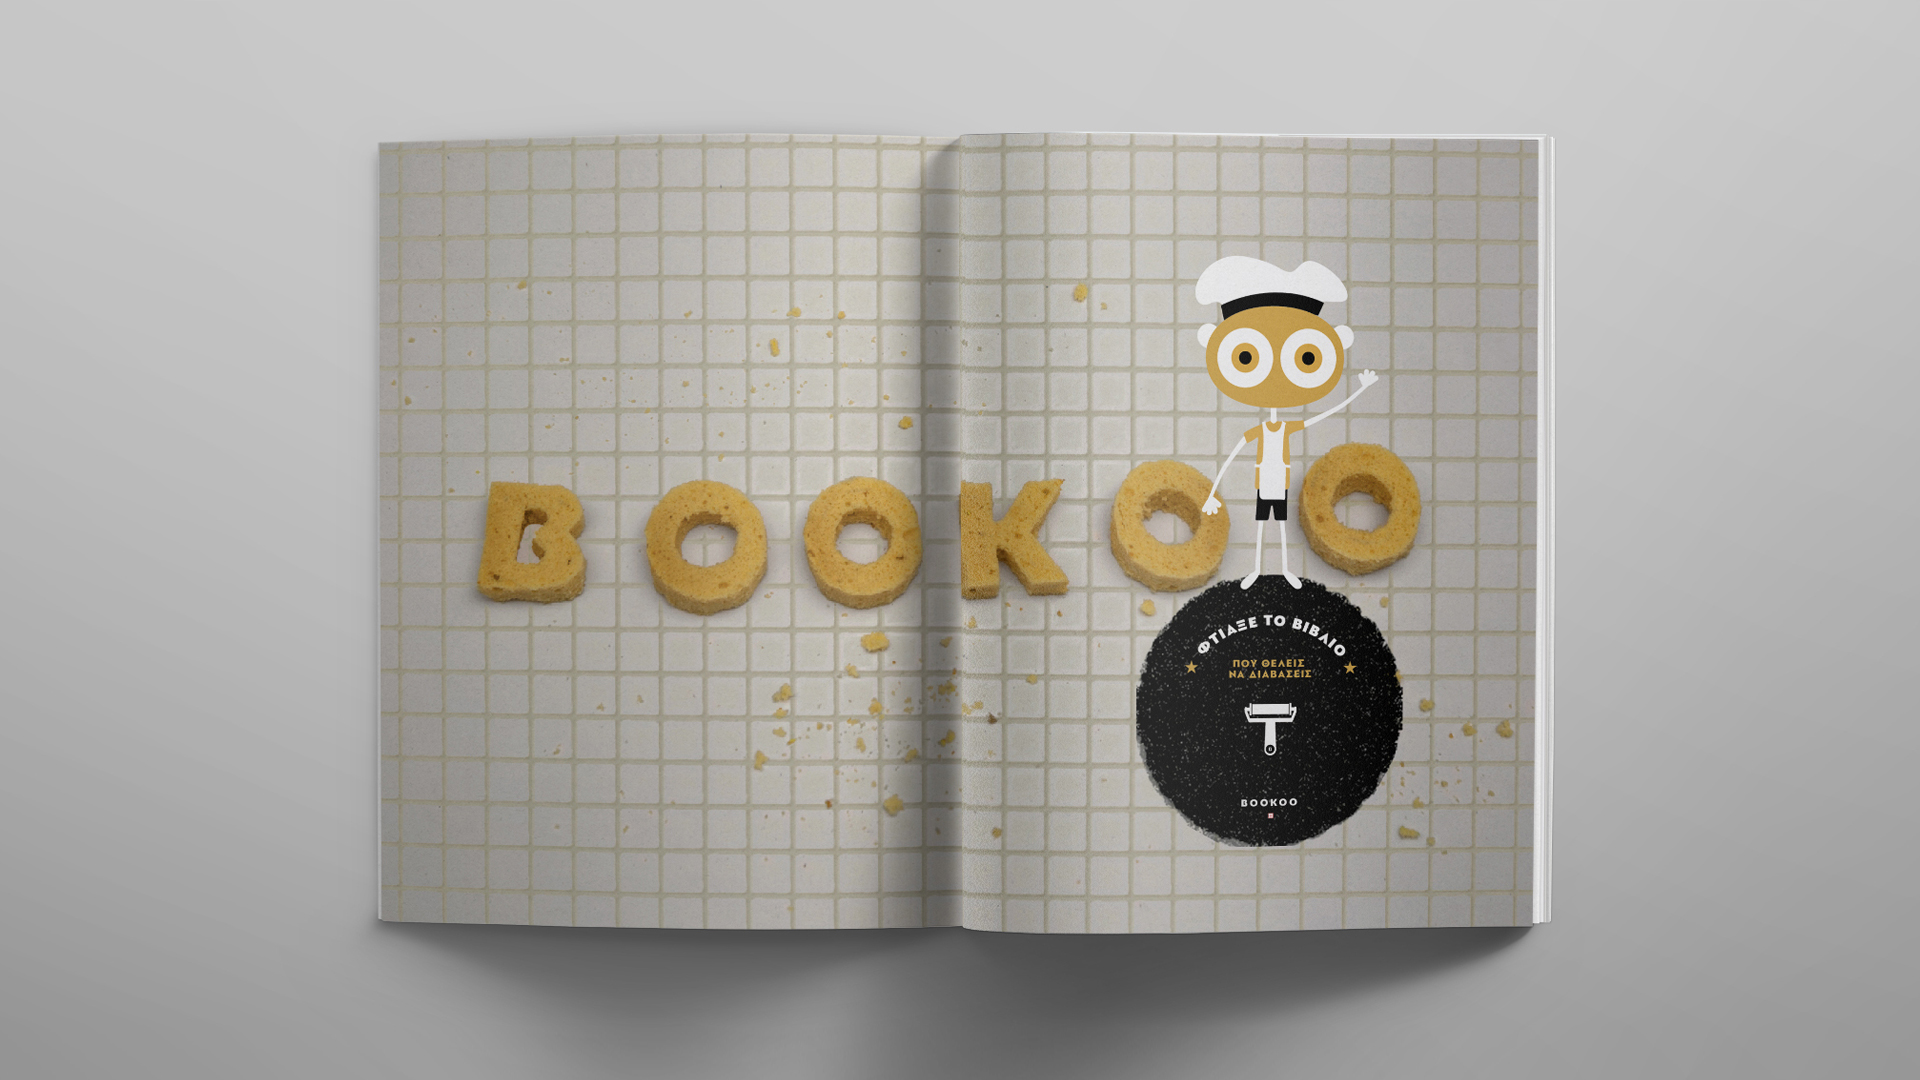 Bookoo Press Kit Designpark